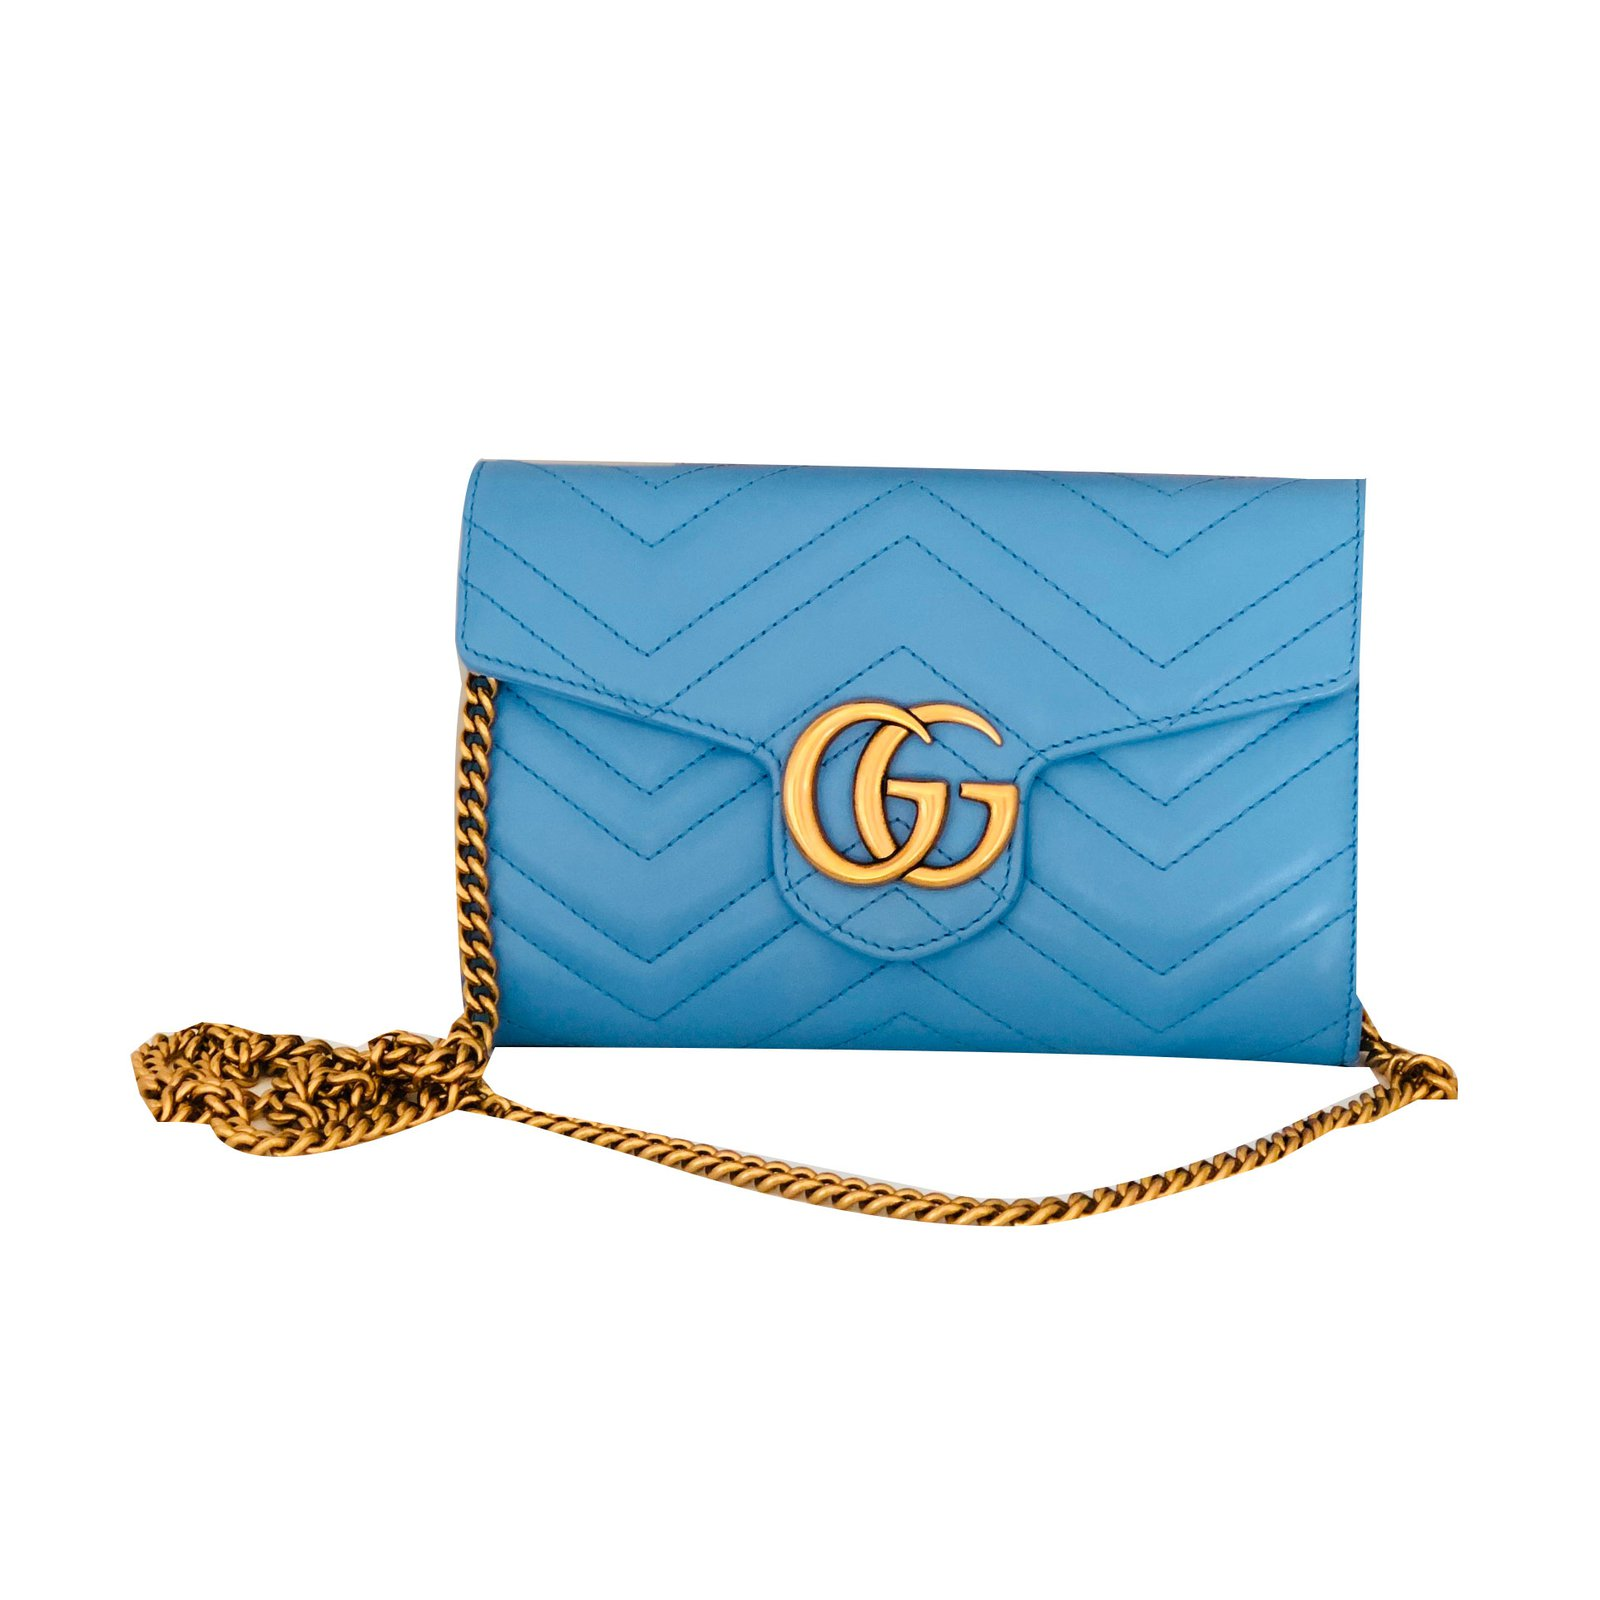 508bf90776dc6a Gucci Marmont Chevron Chain wallet bag Handbags Leather Blue ref.55520 -  Joli Closet